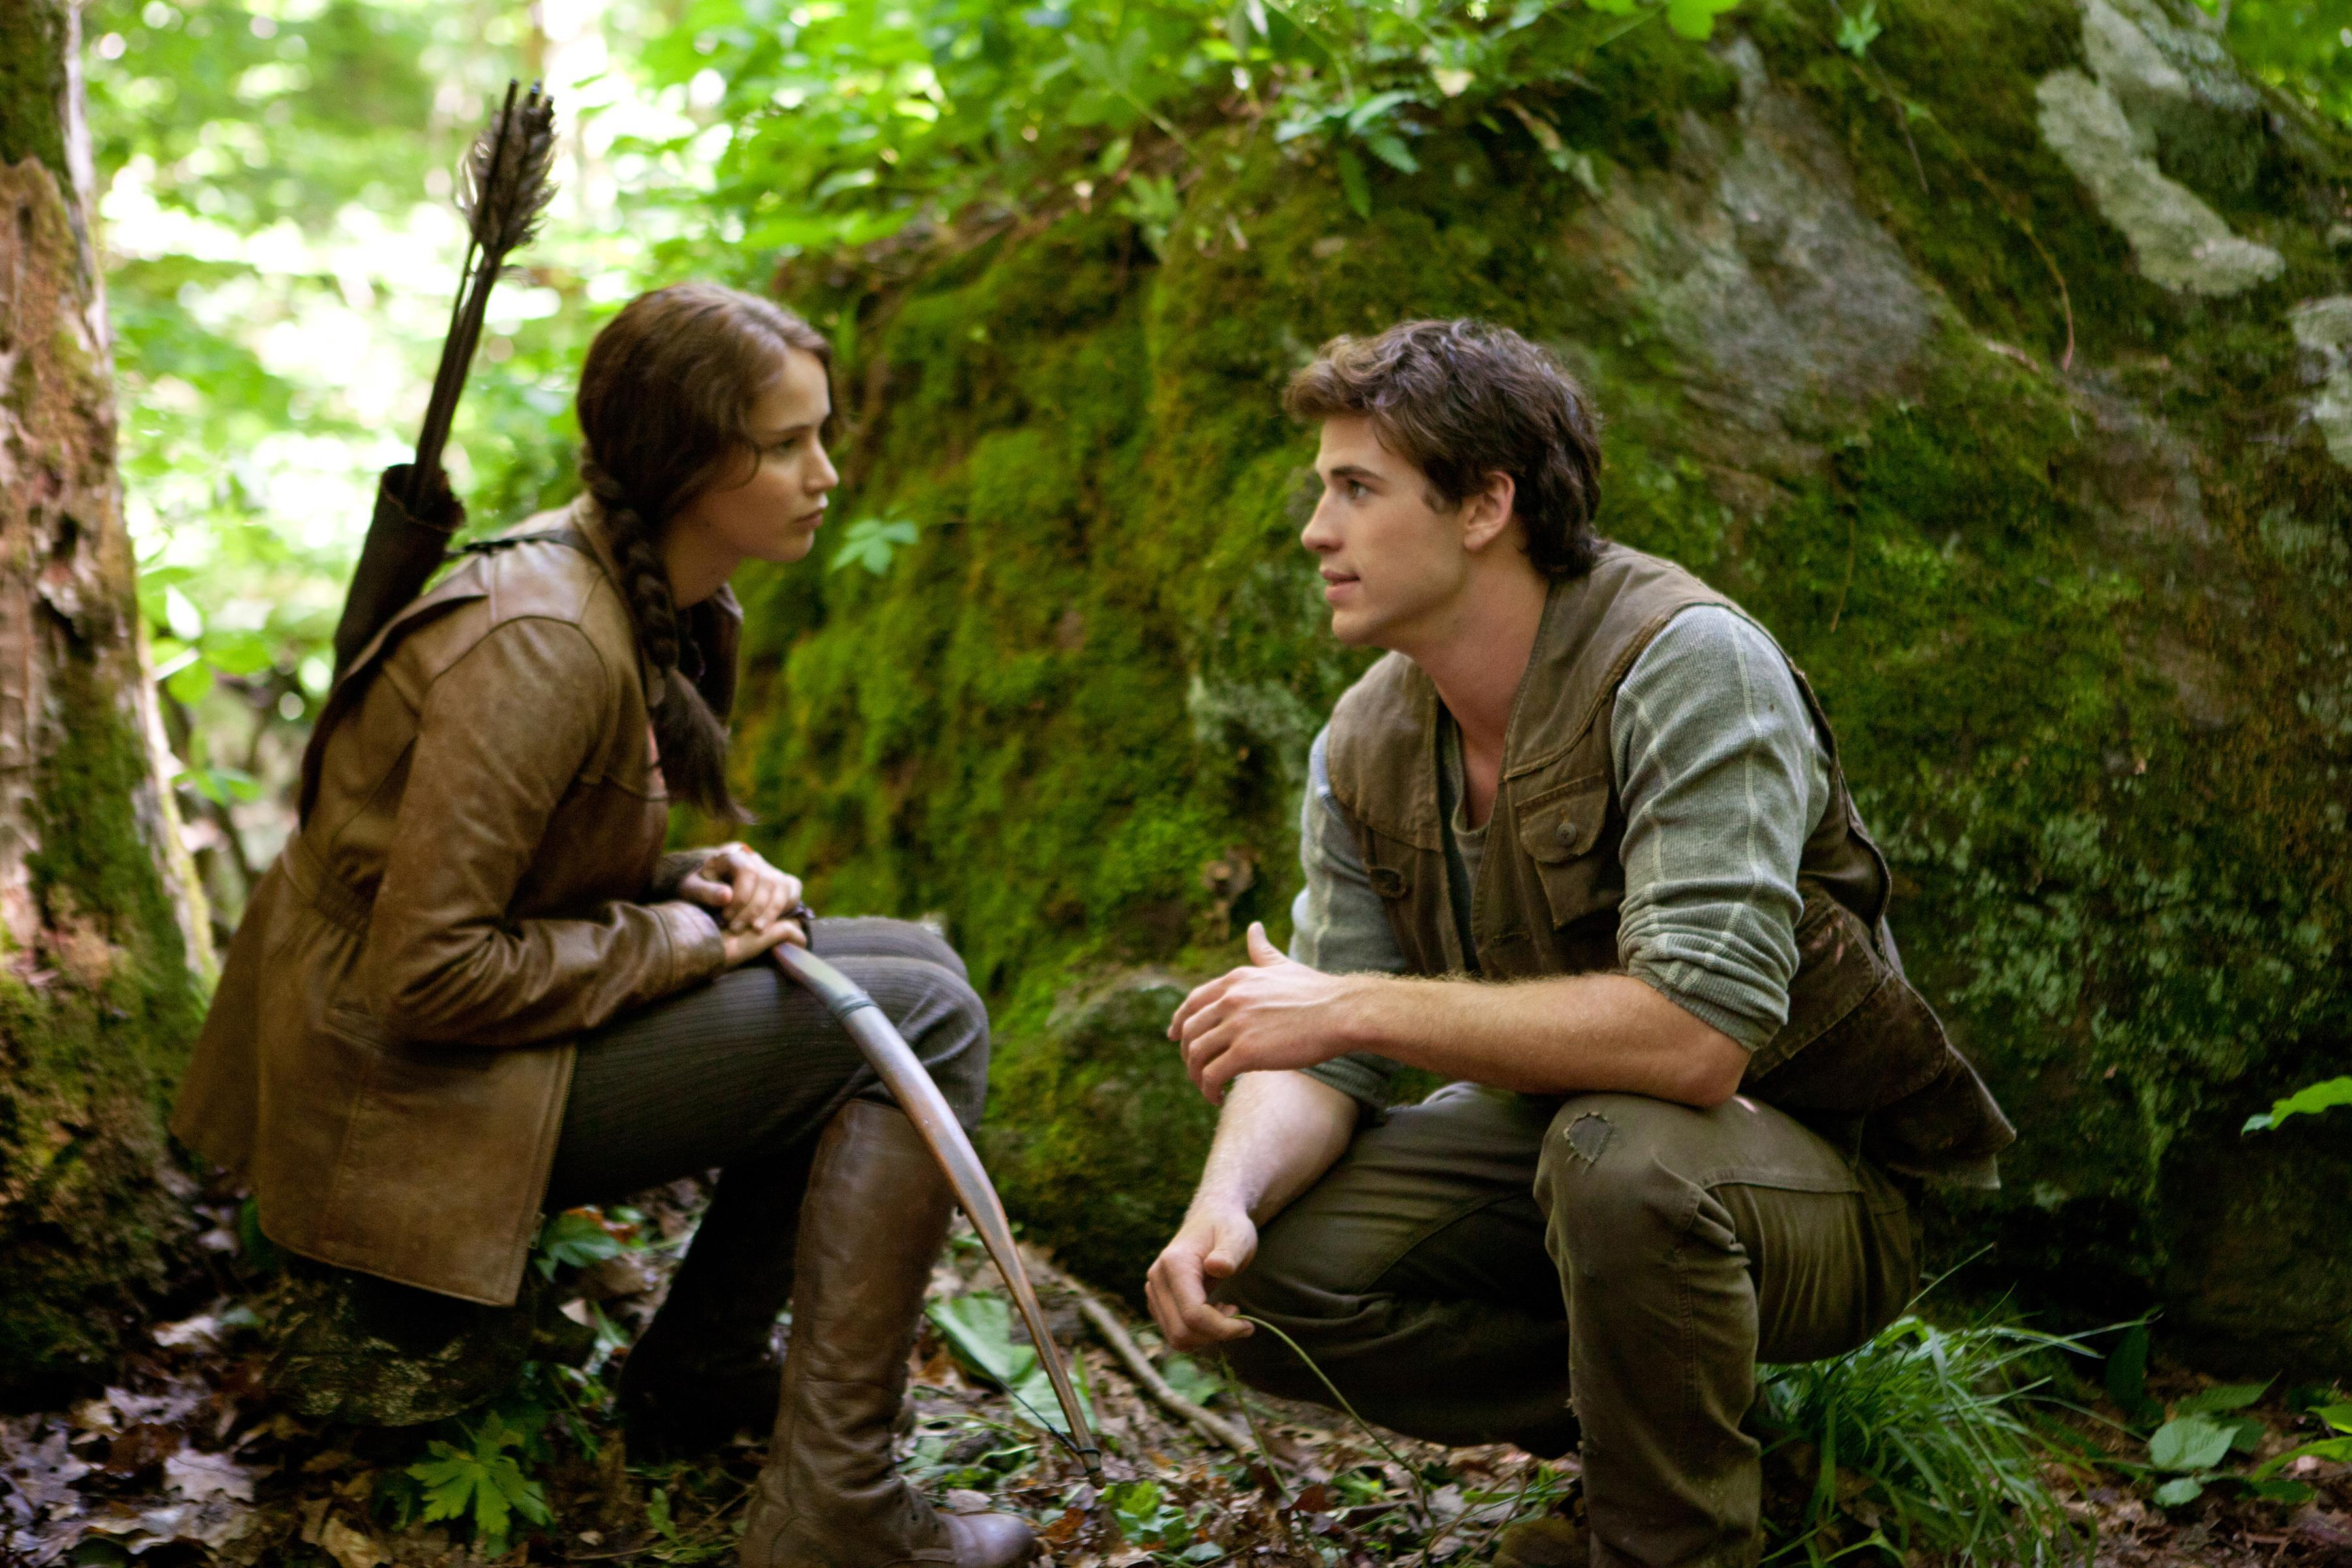 Jennifer Lawrence as Katniss Everdeen and Liam Hemsworth as Gale Hawthorne pause together in the forest in The Hunger Games